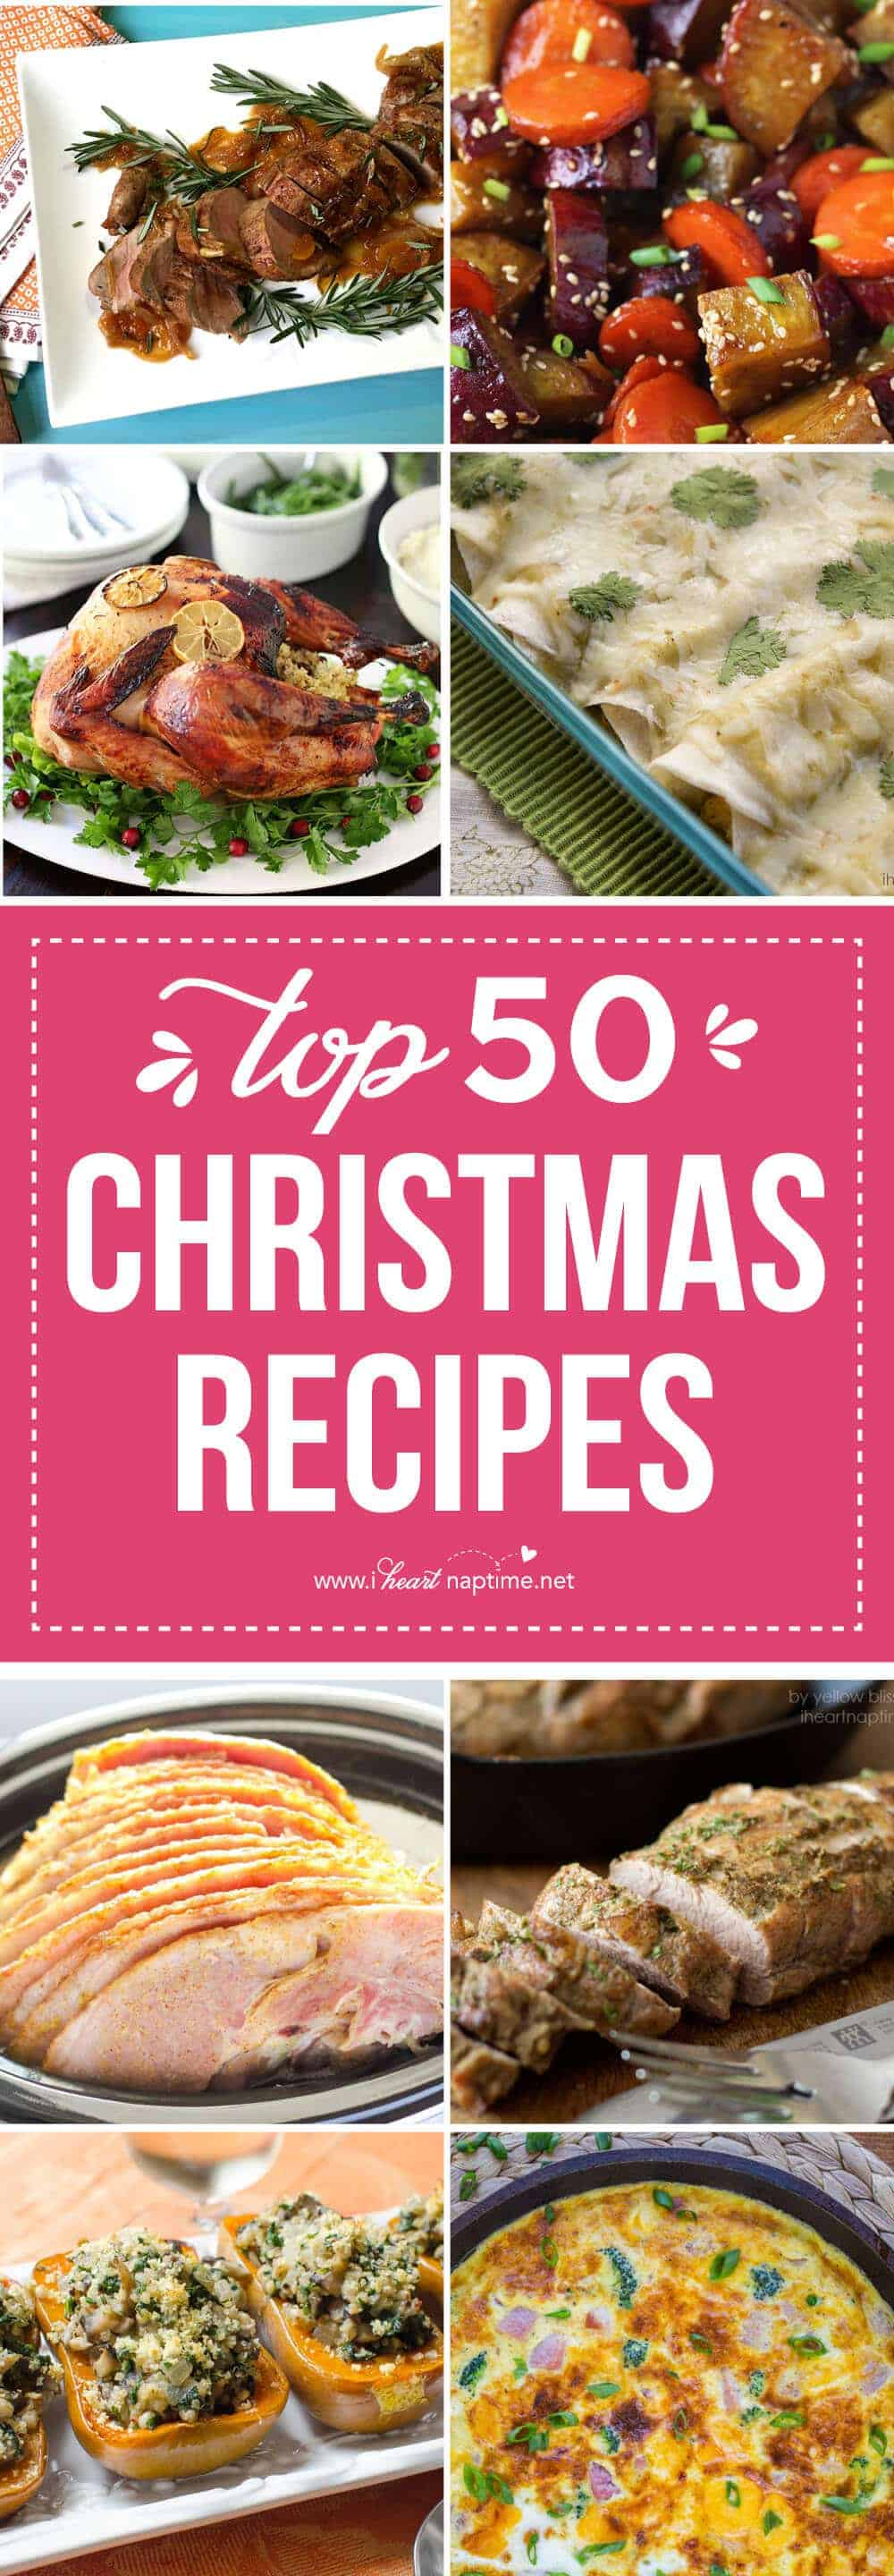 Top 50 christmas dinner recipes i heart nap time i hoped this top 50 christmas dinner recipes round up sparked some new ideas forumfinder Gallery